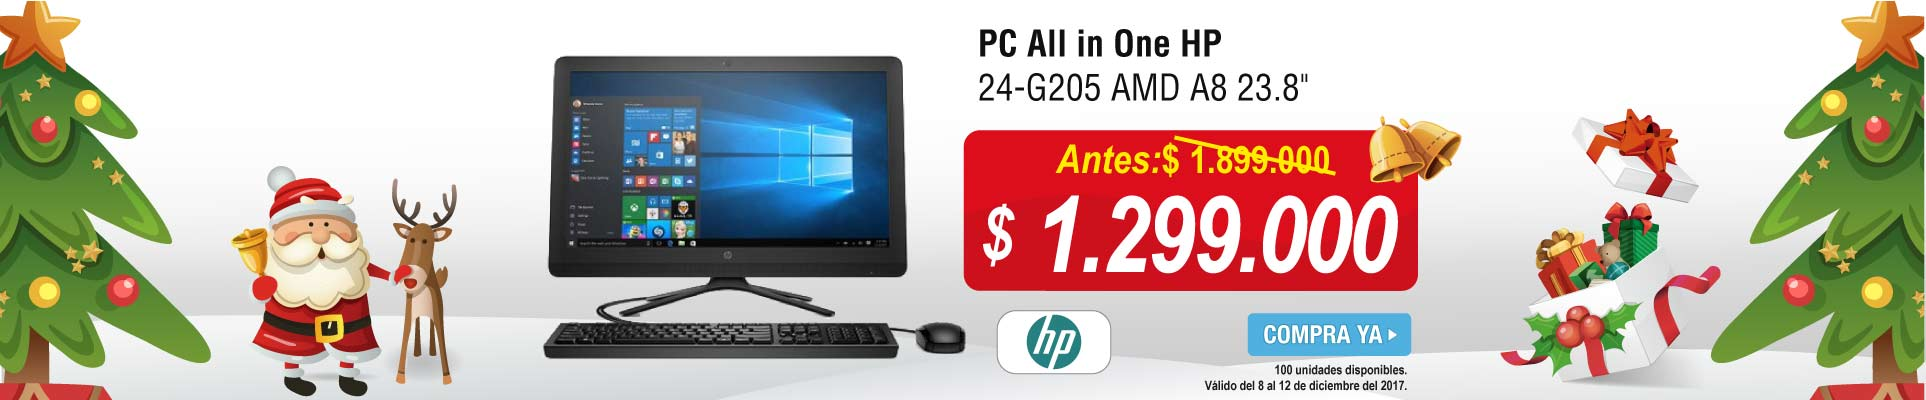 CAT ALKP-3-computadores-PC All in One HP 24-G205 AMD A8  23.8-prod-diciembre8-12-marcas